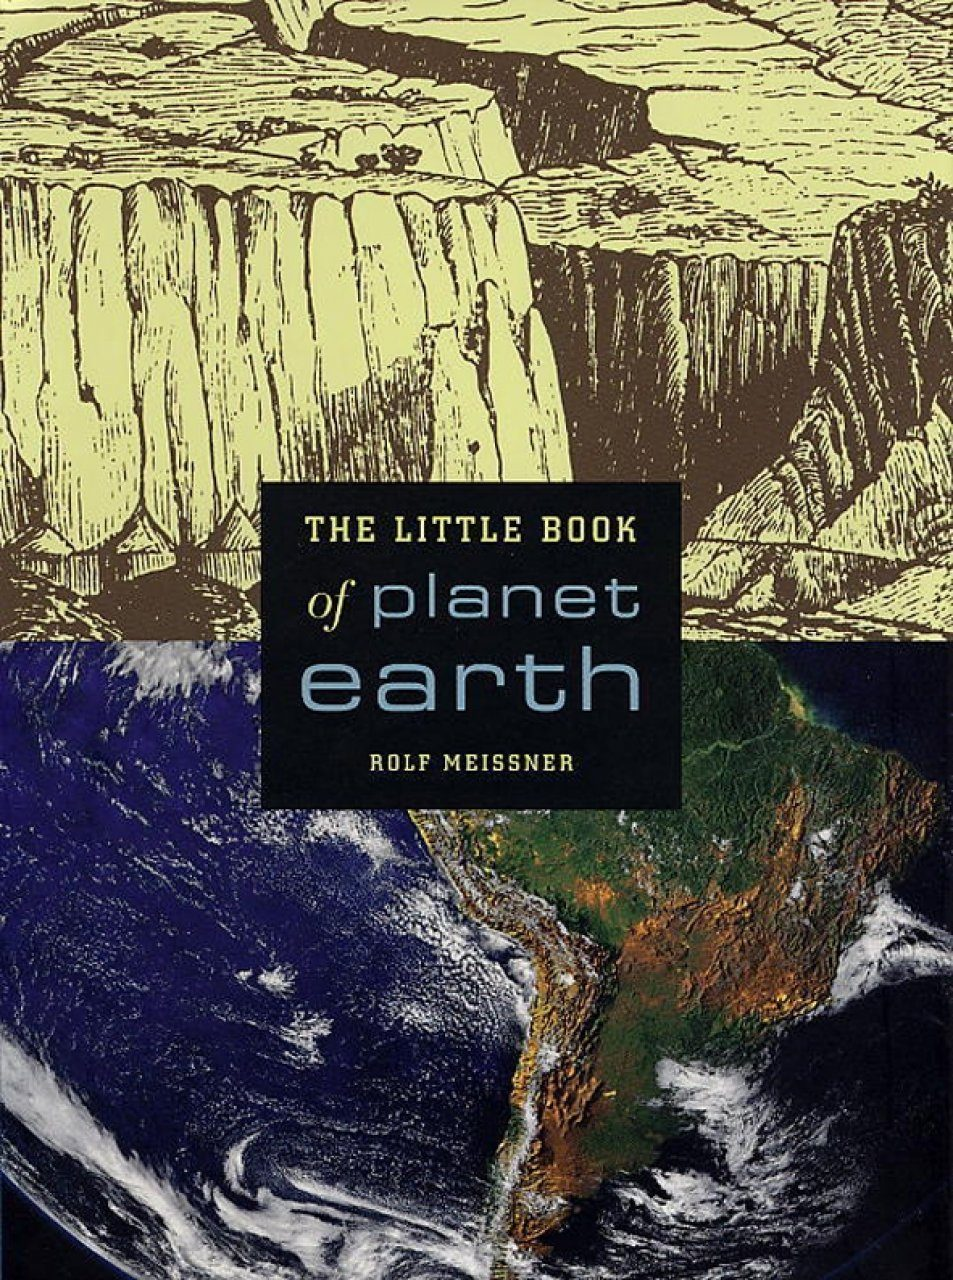 The Little Book of Planet Earth